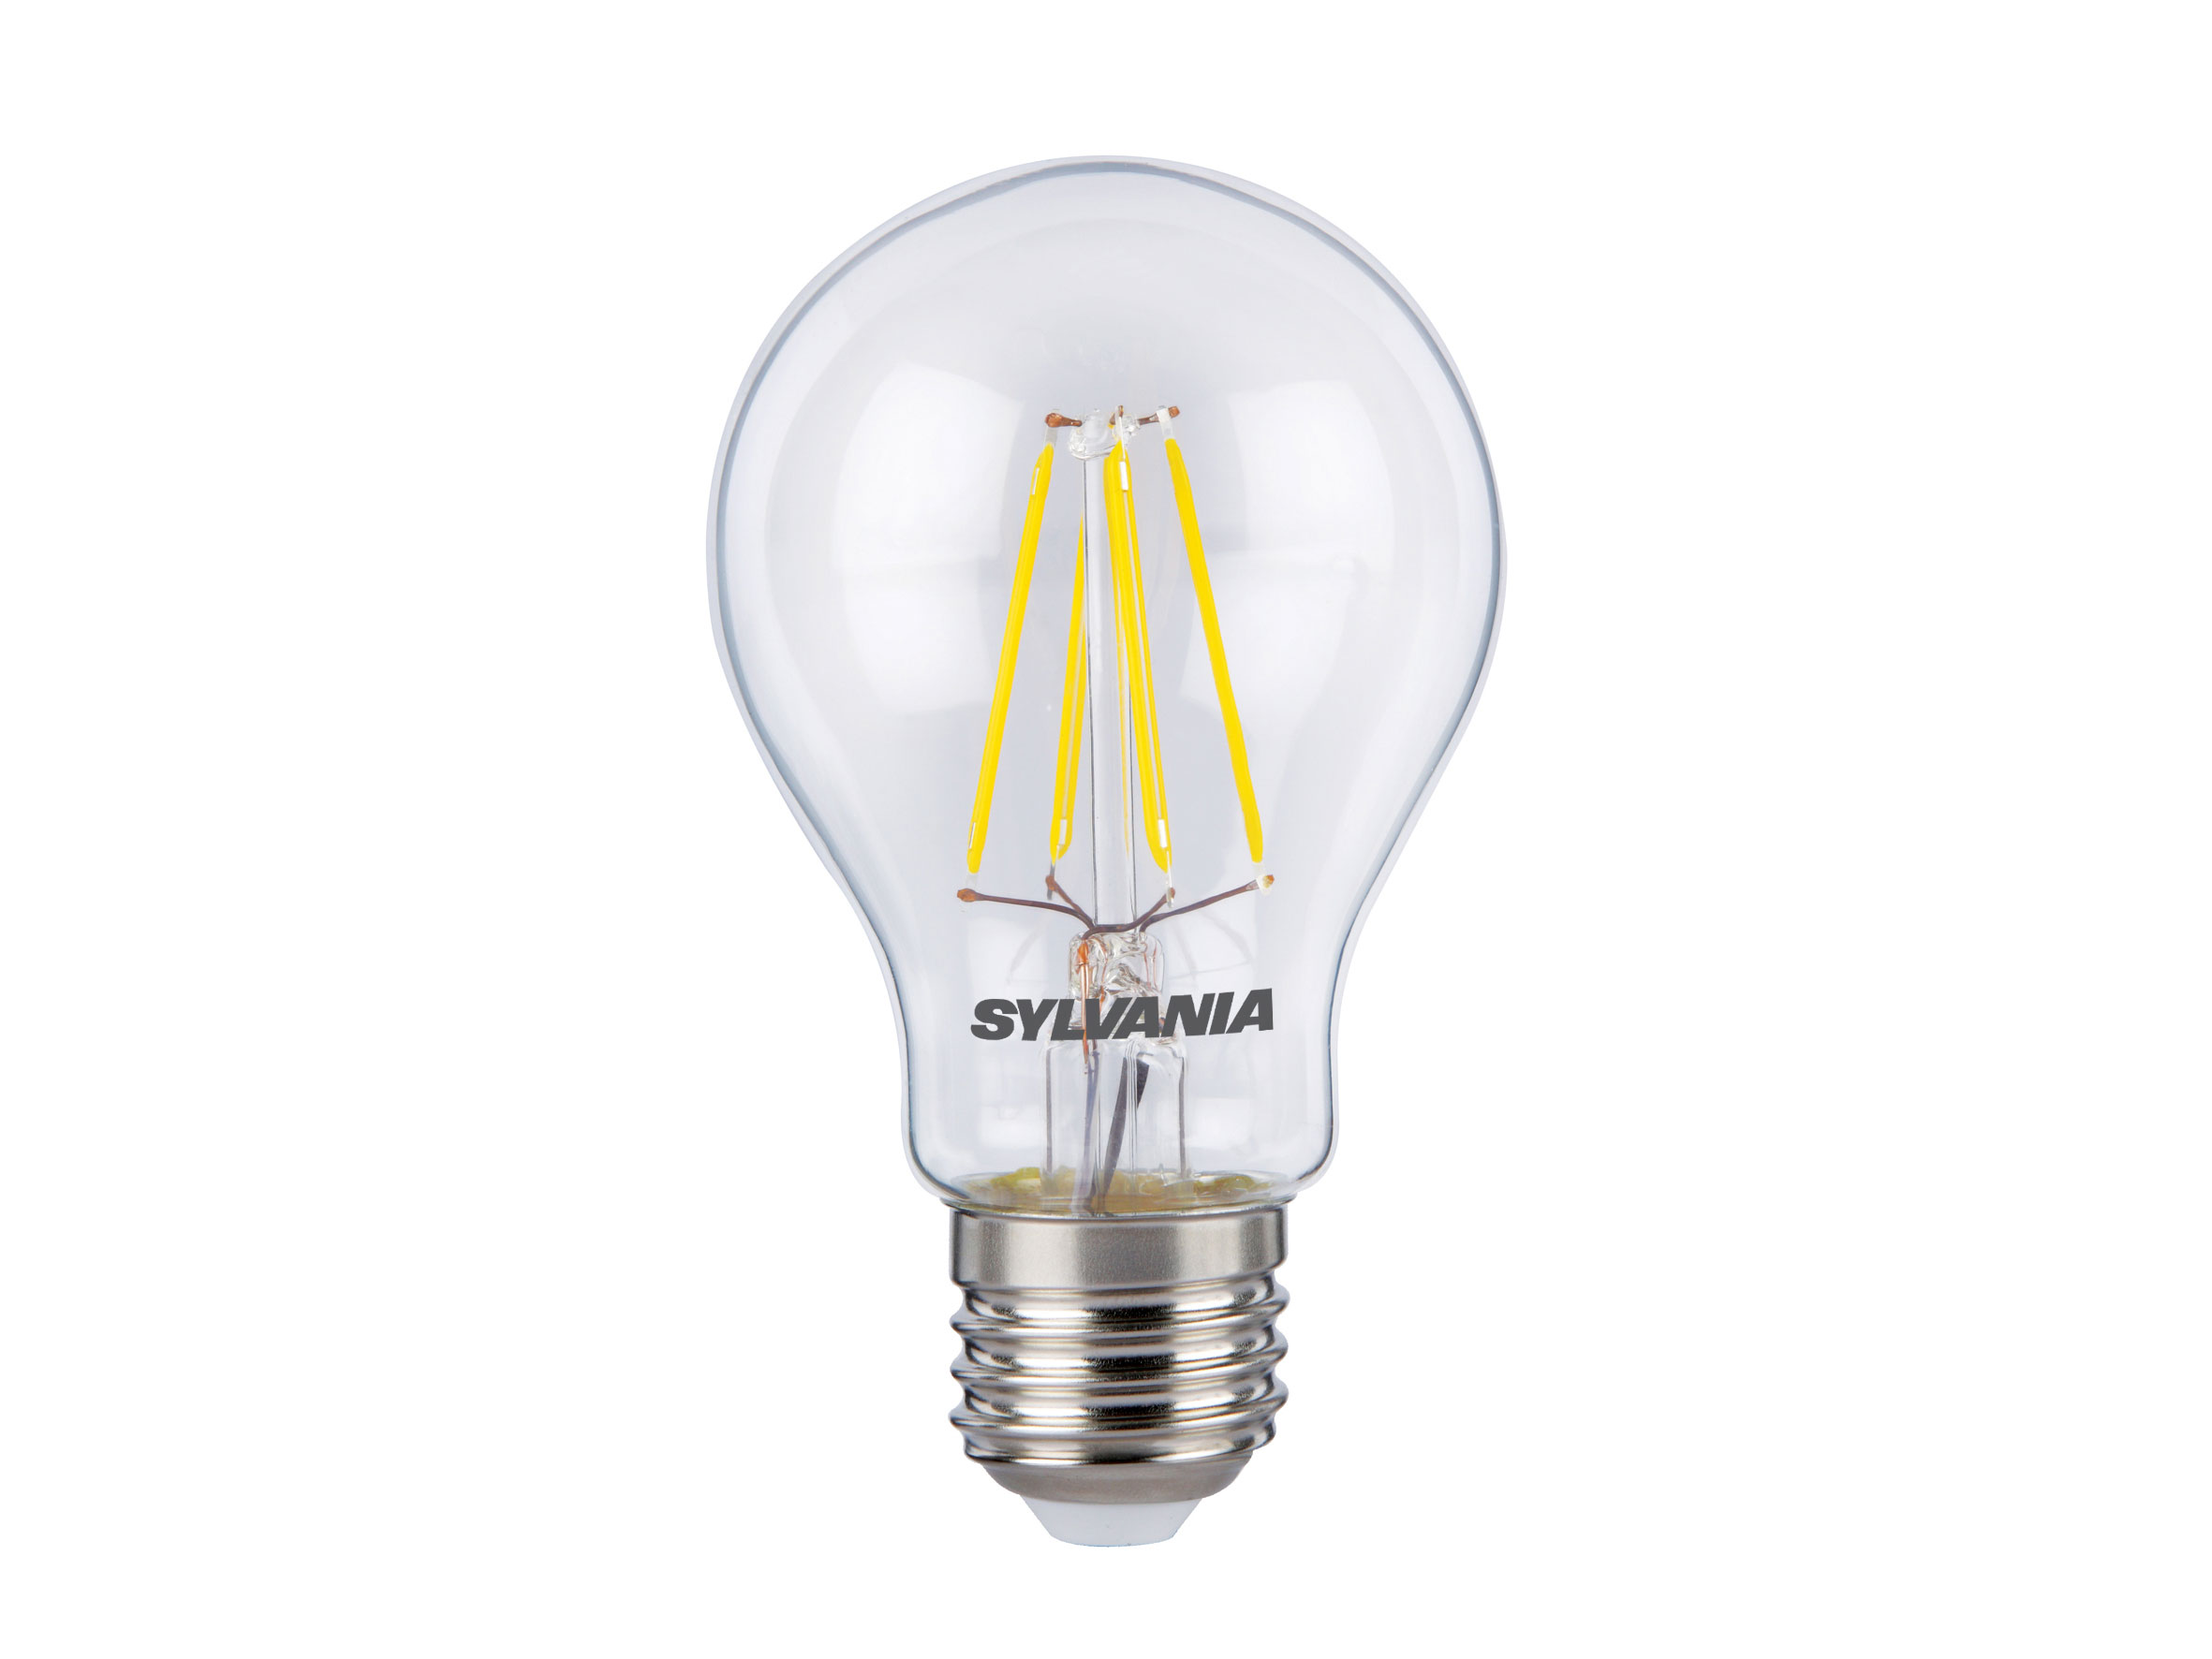 Sylvania 5w Led Gls Traditional Light Bulb E27 Es Warm White 2700k Non Dimmable Liminaires